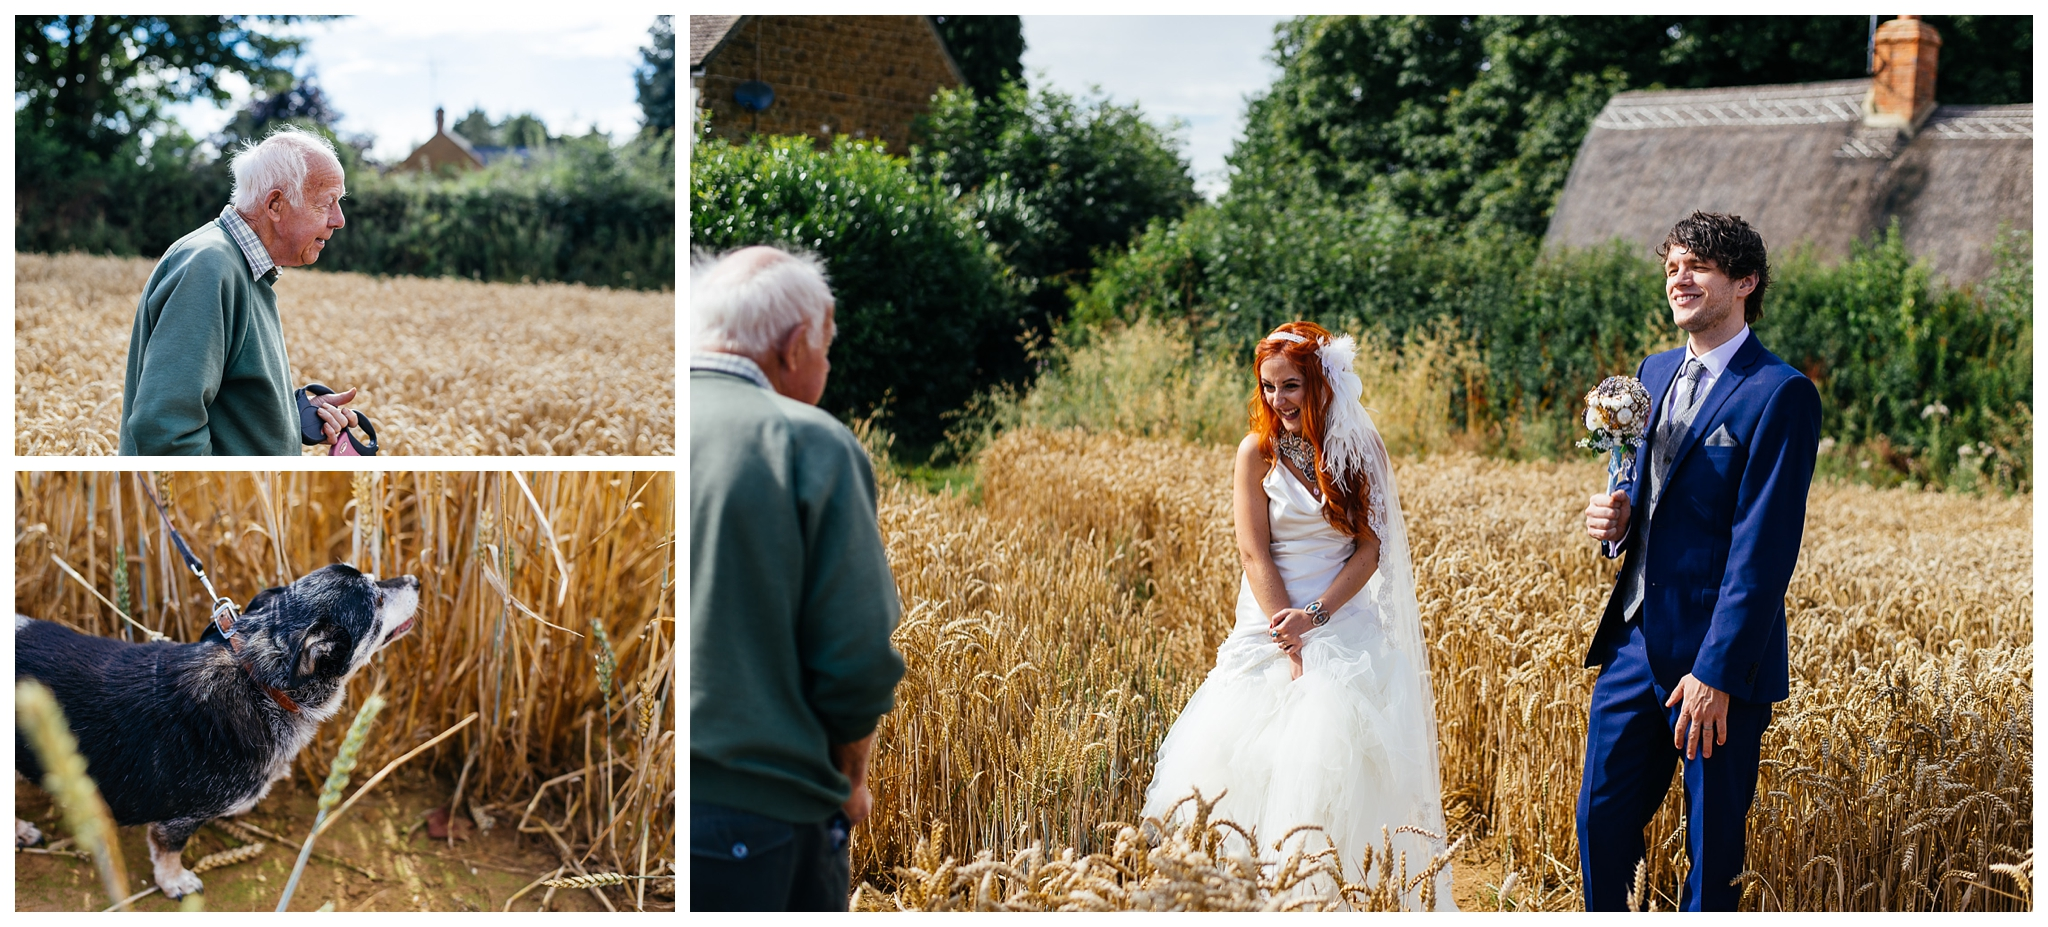 Nikki_Cooper_Photography_vintage_handmade_wedding_0046.jpg